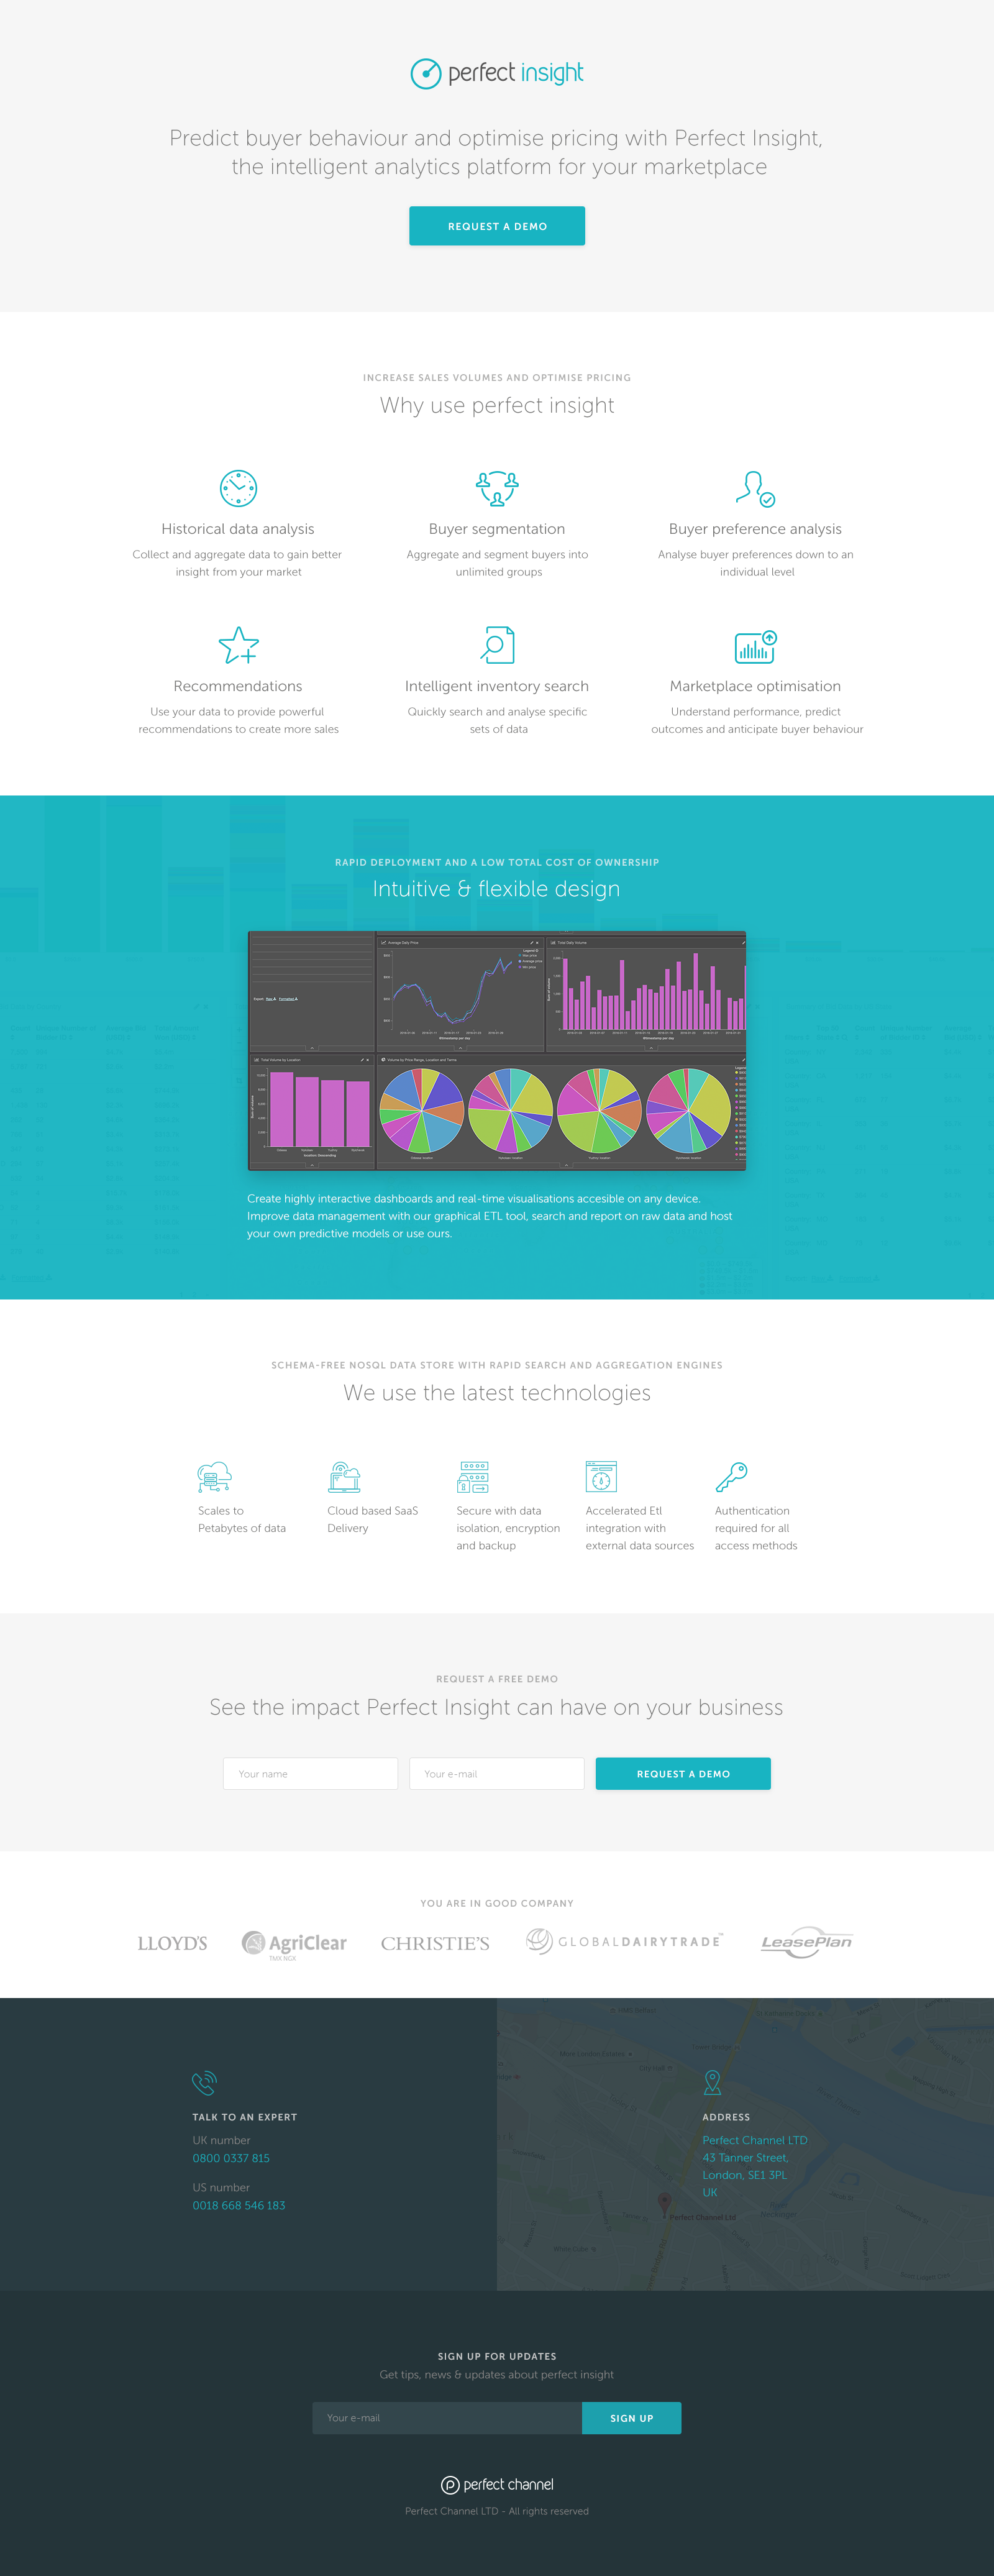 Perfect insight landing page